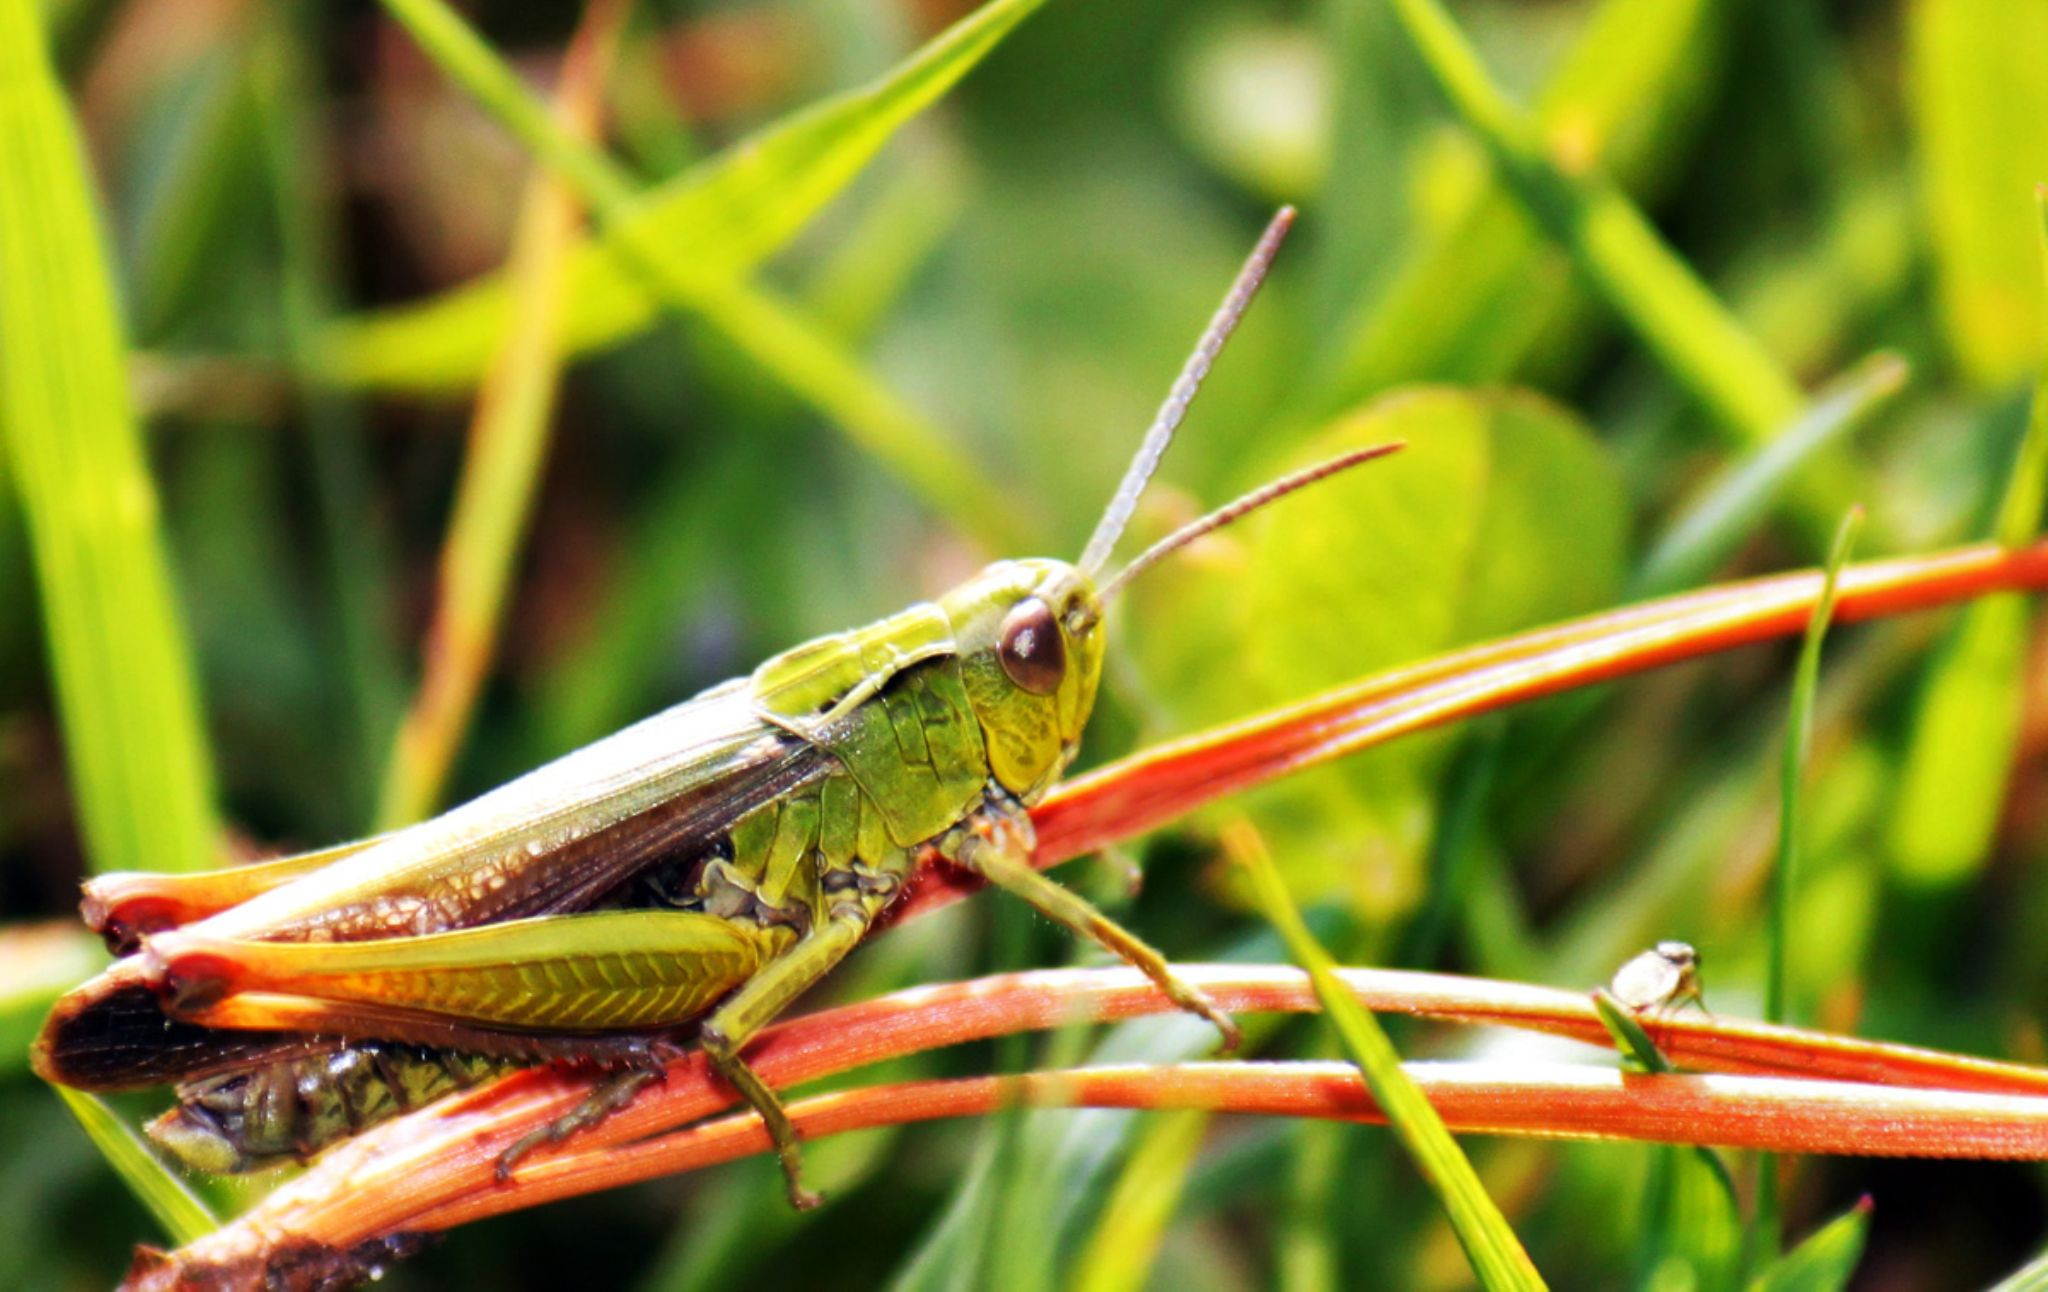 Grasshopper by Michael Armstrong